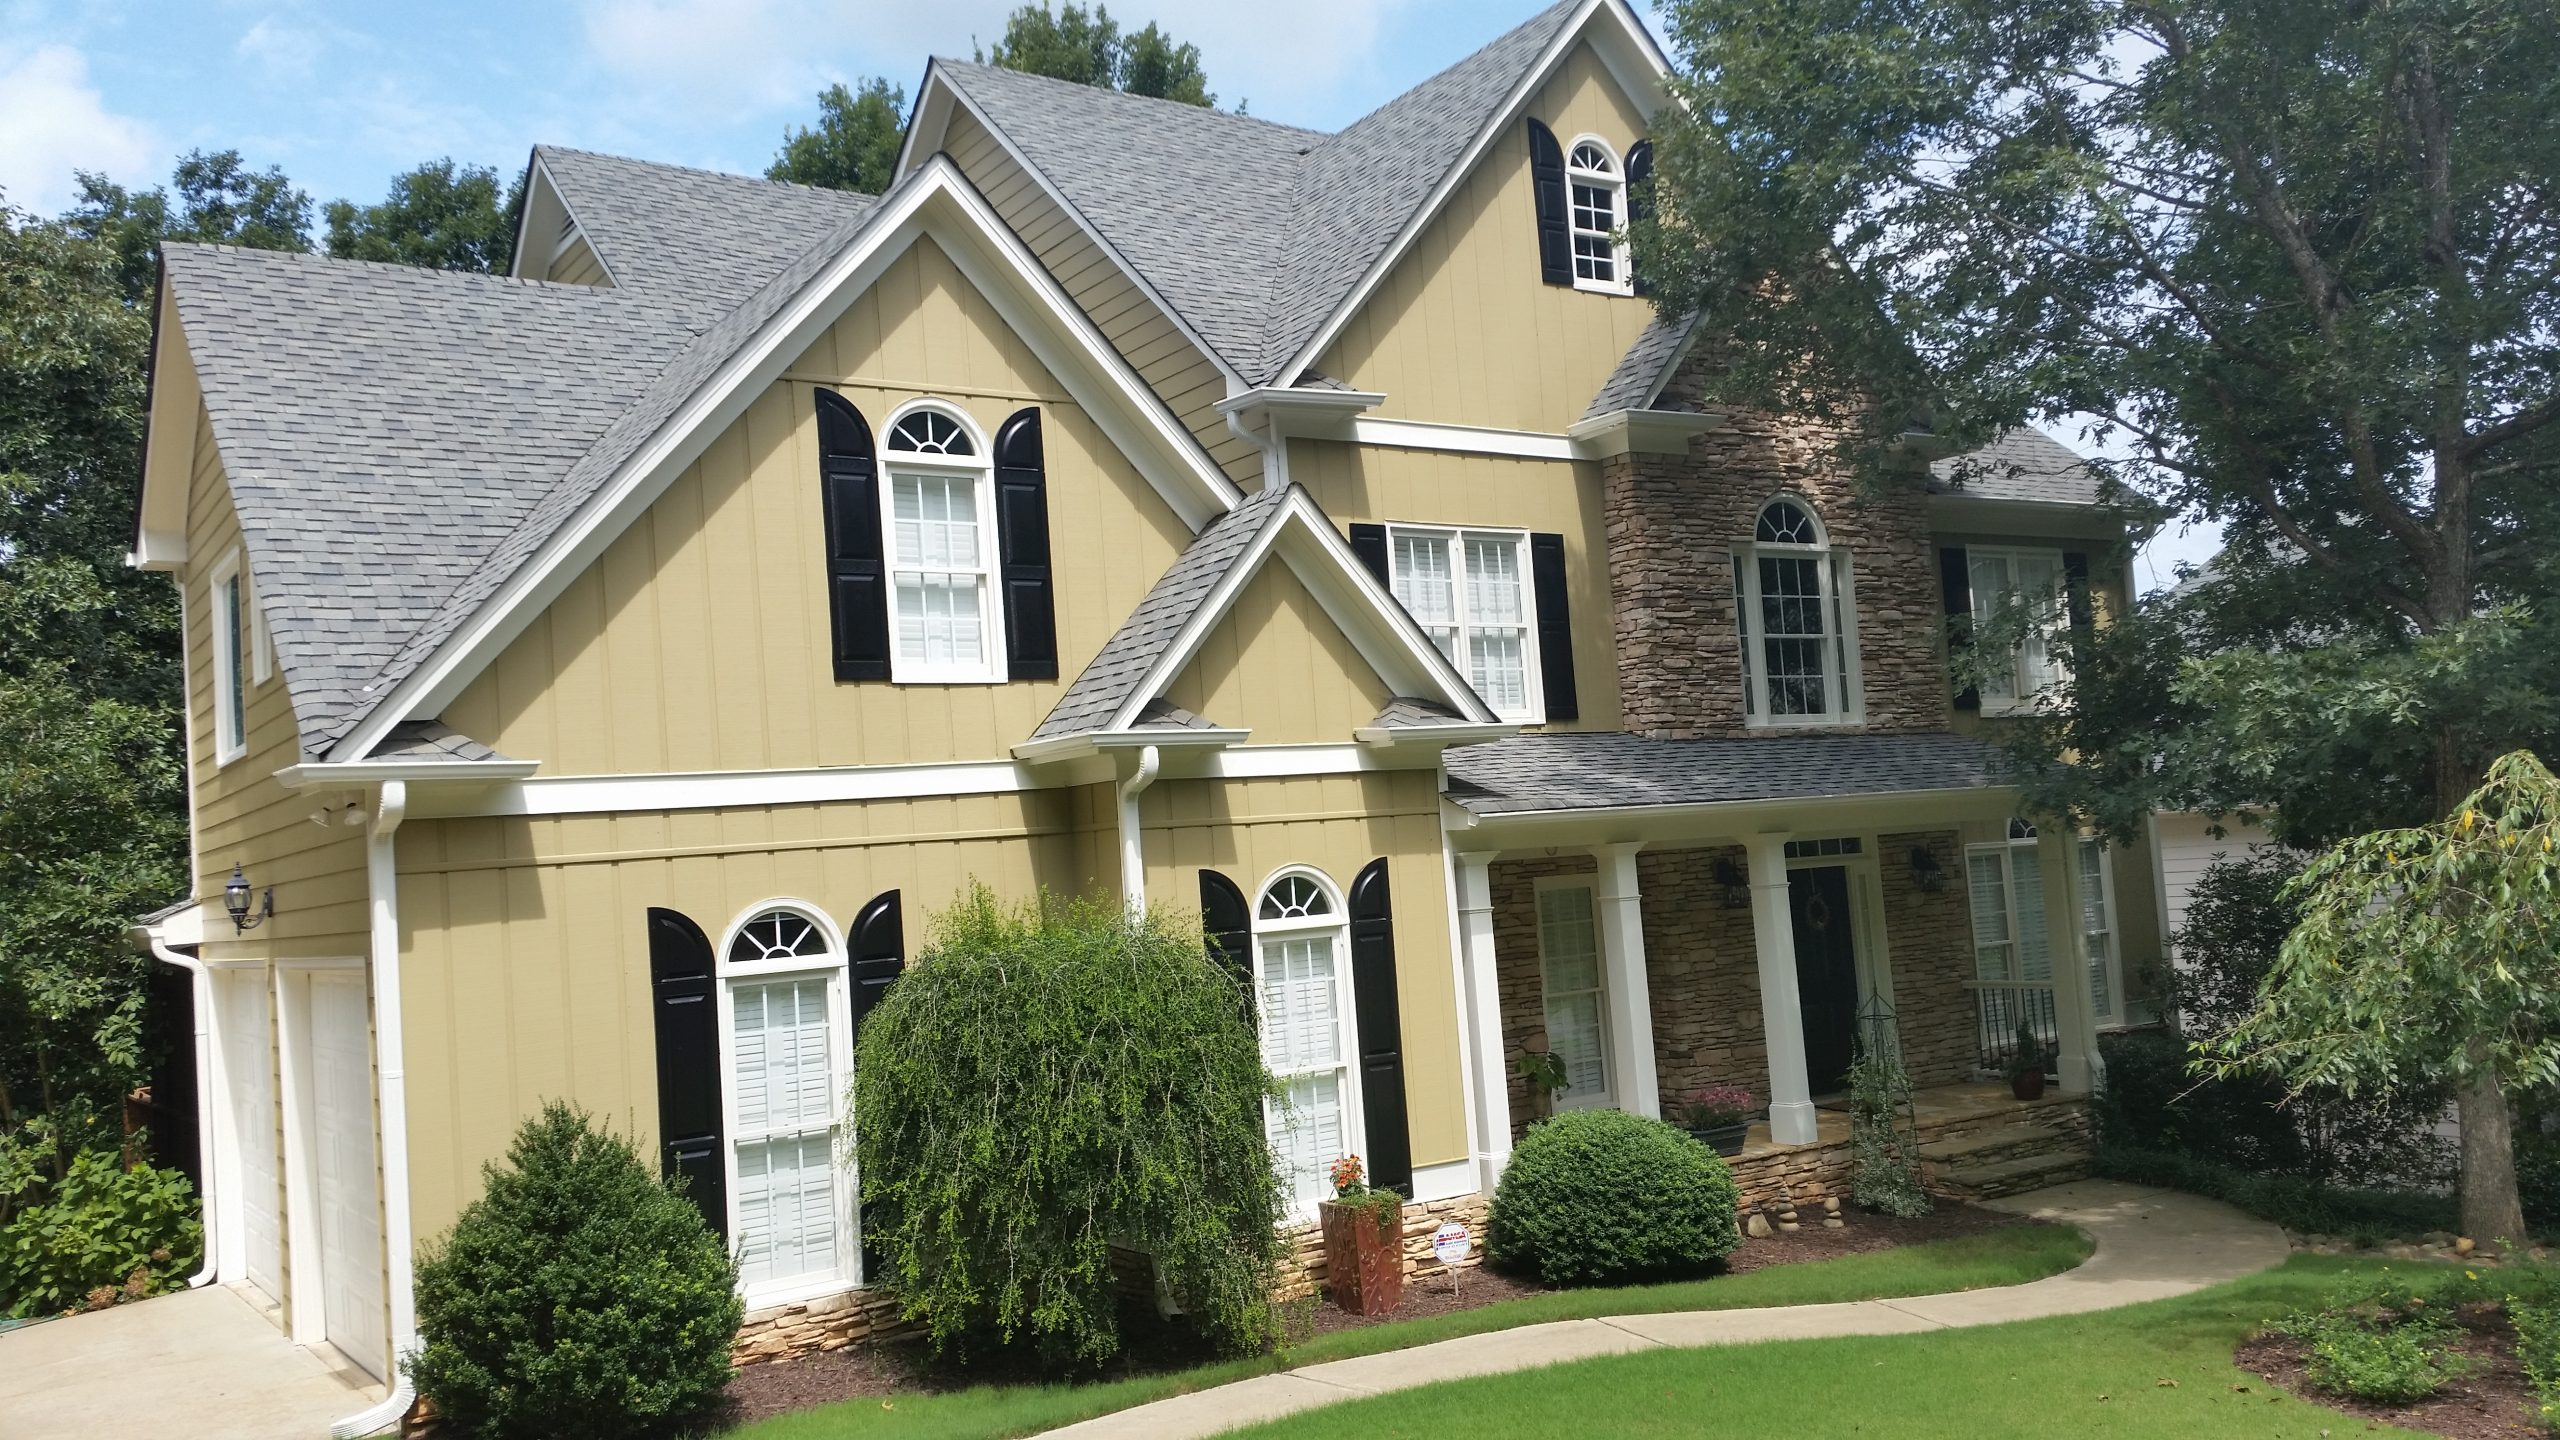 Vinyl Siding in beige color